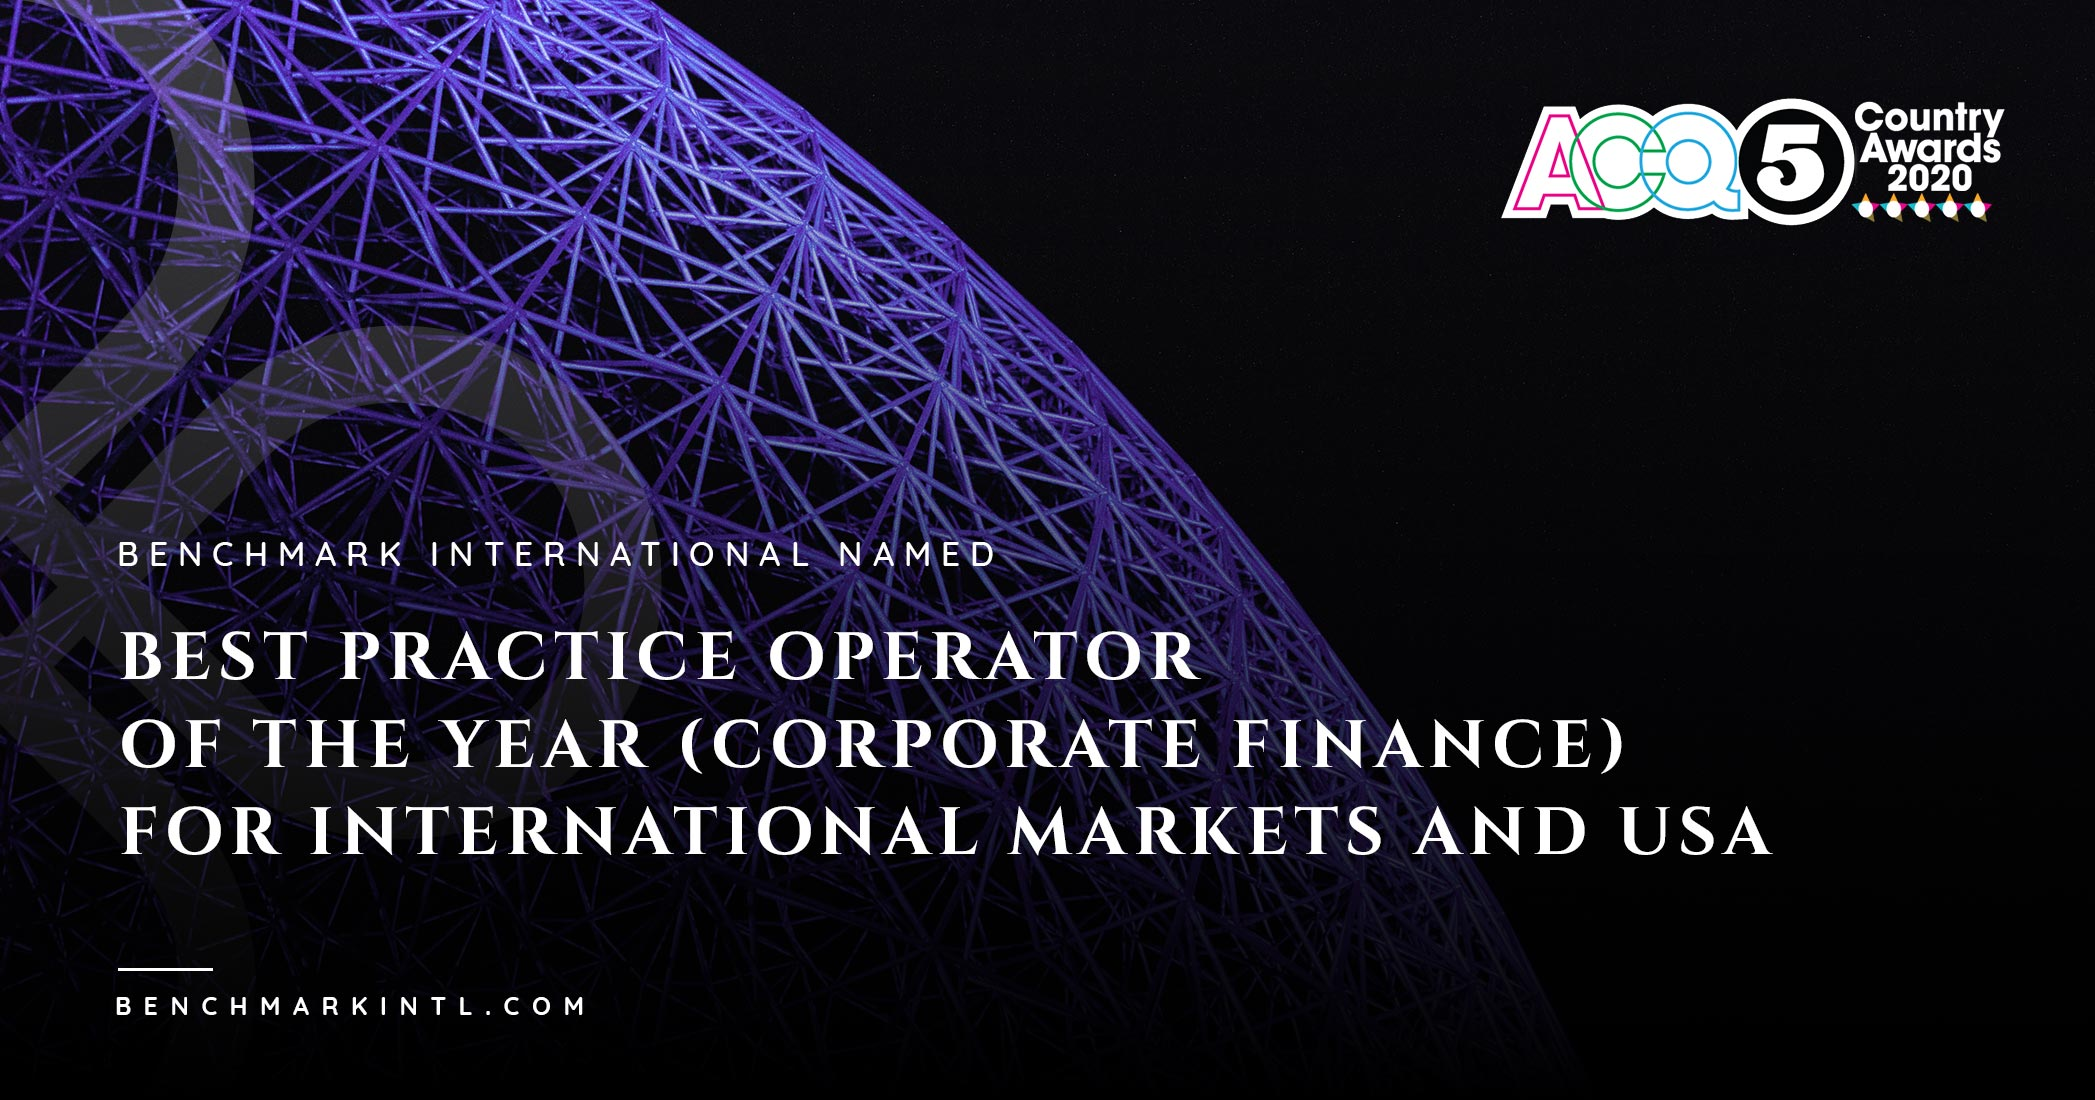 Benchmark International Named Best Practice Operator of the Year (Corporate Finance) for International Markets and USA